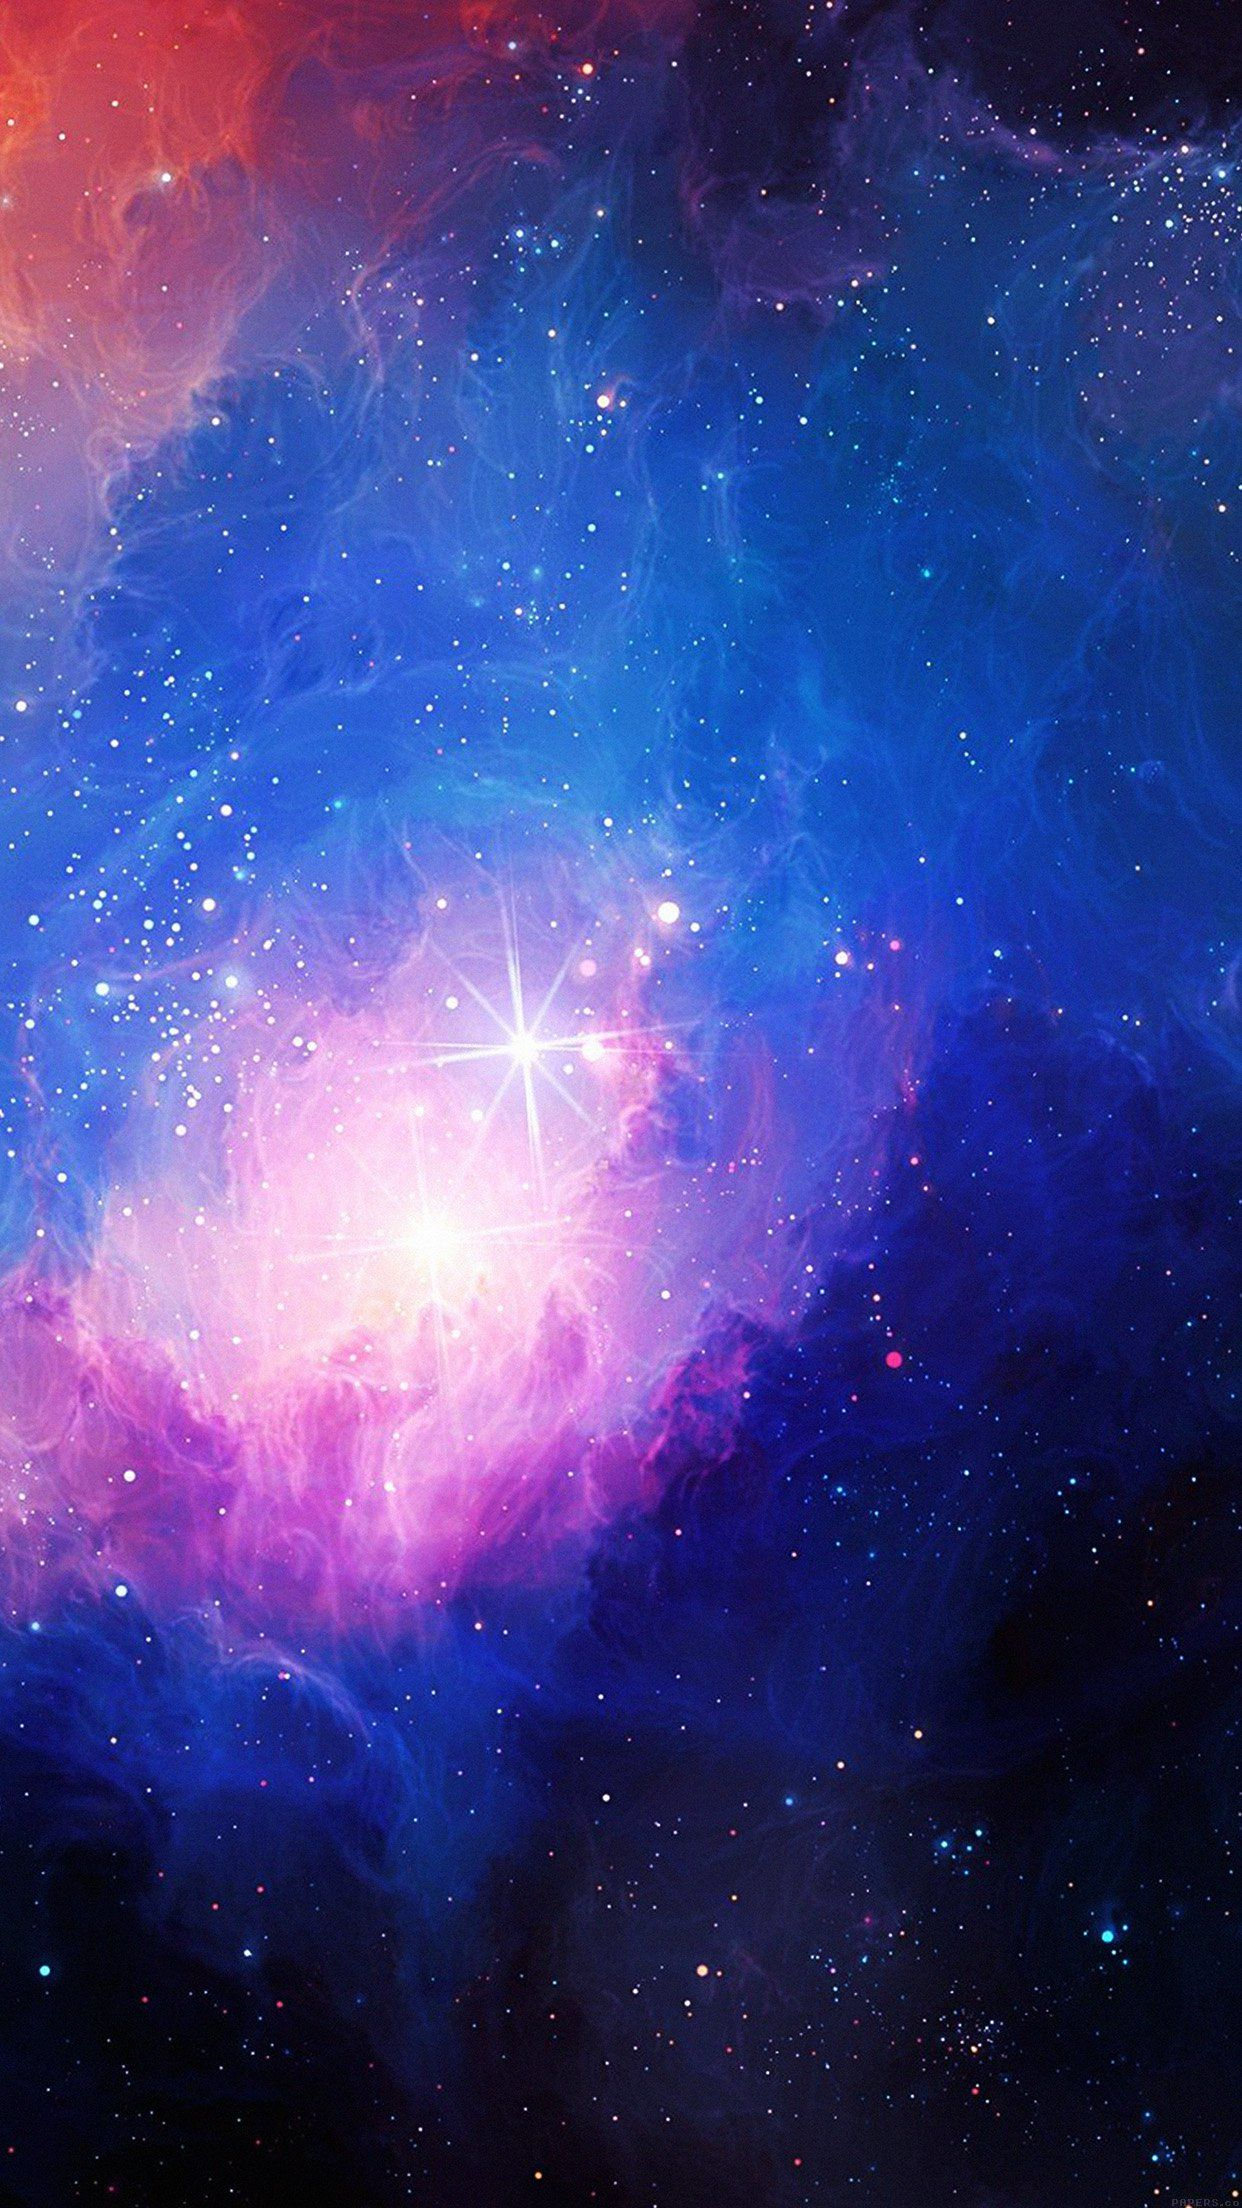 Gorgeous galaxy wallpapers for iPhone and iPad | Galaxy ...